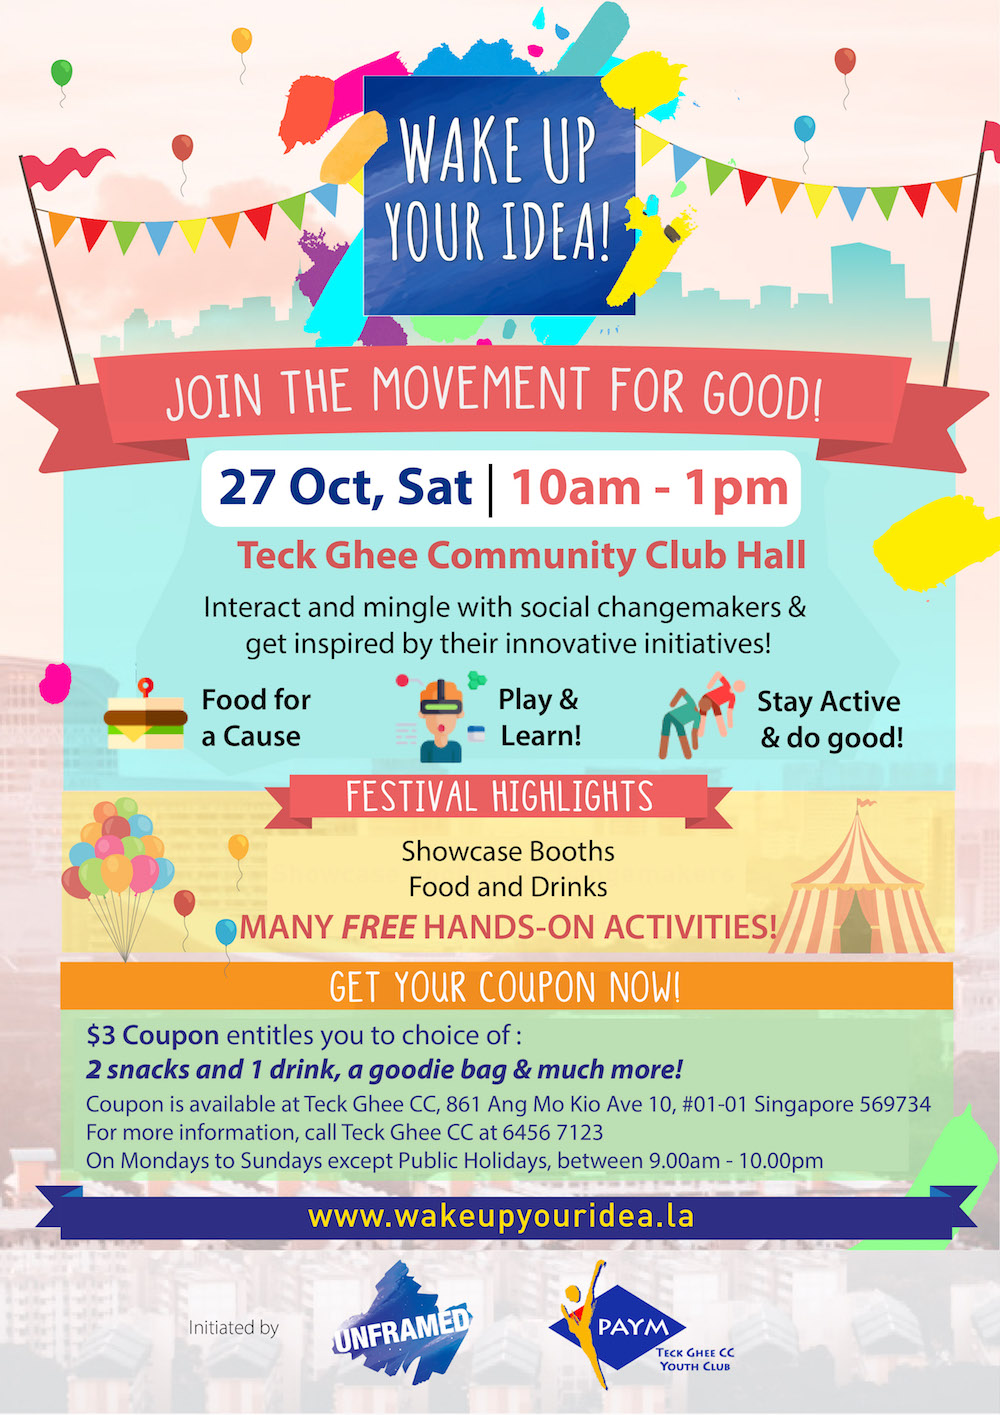 wake-up-your-idea-at-teck-ghee-cc-poster_0_65062400_1539941278 Event - Join the movement for good! Wake Up Your Idea! Festival